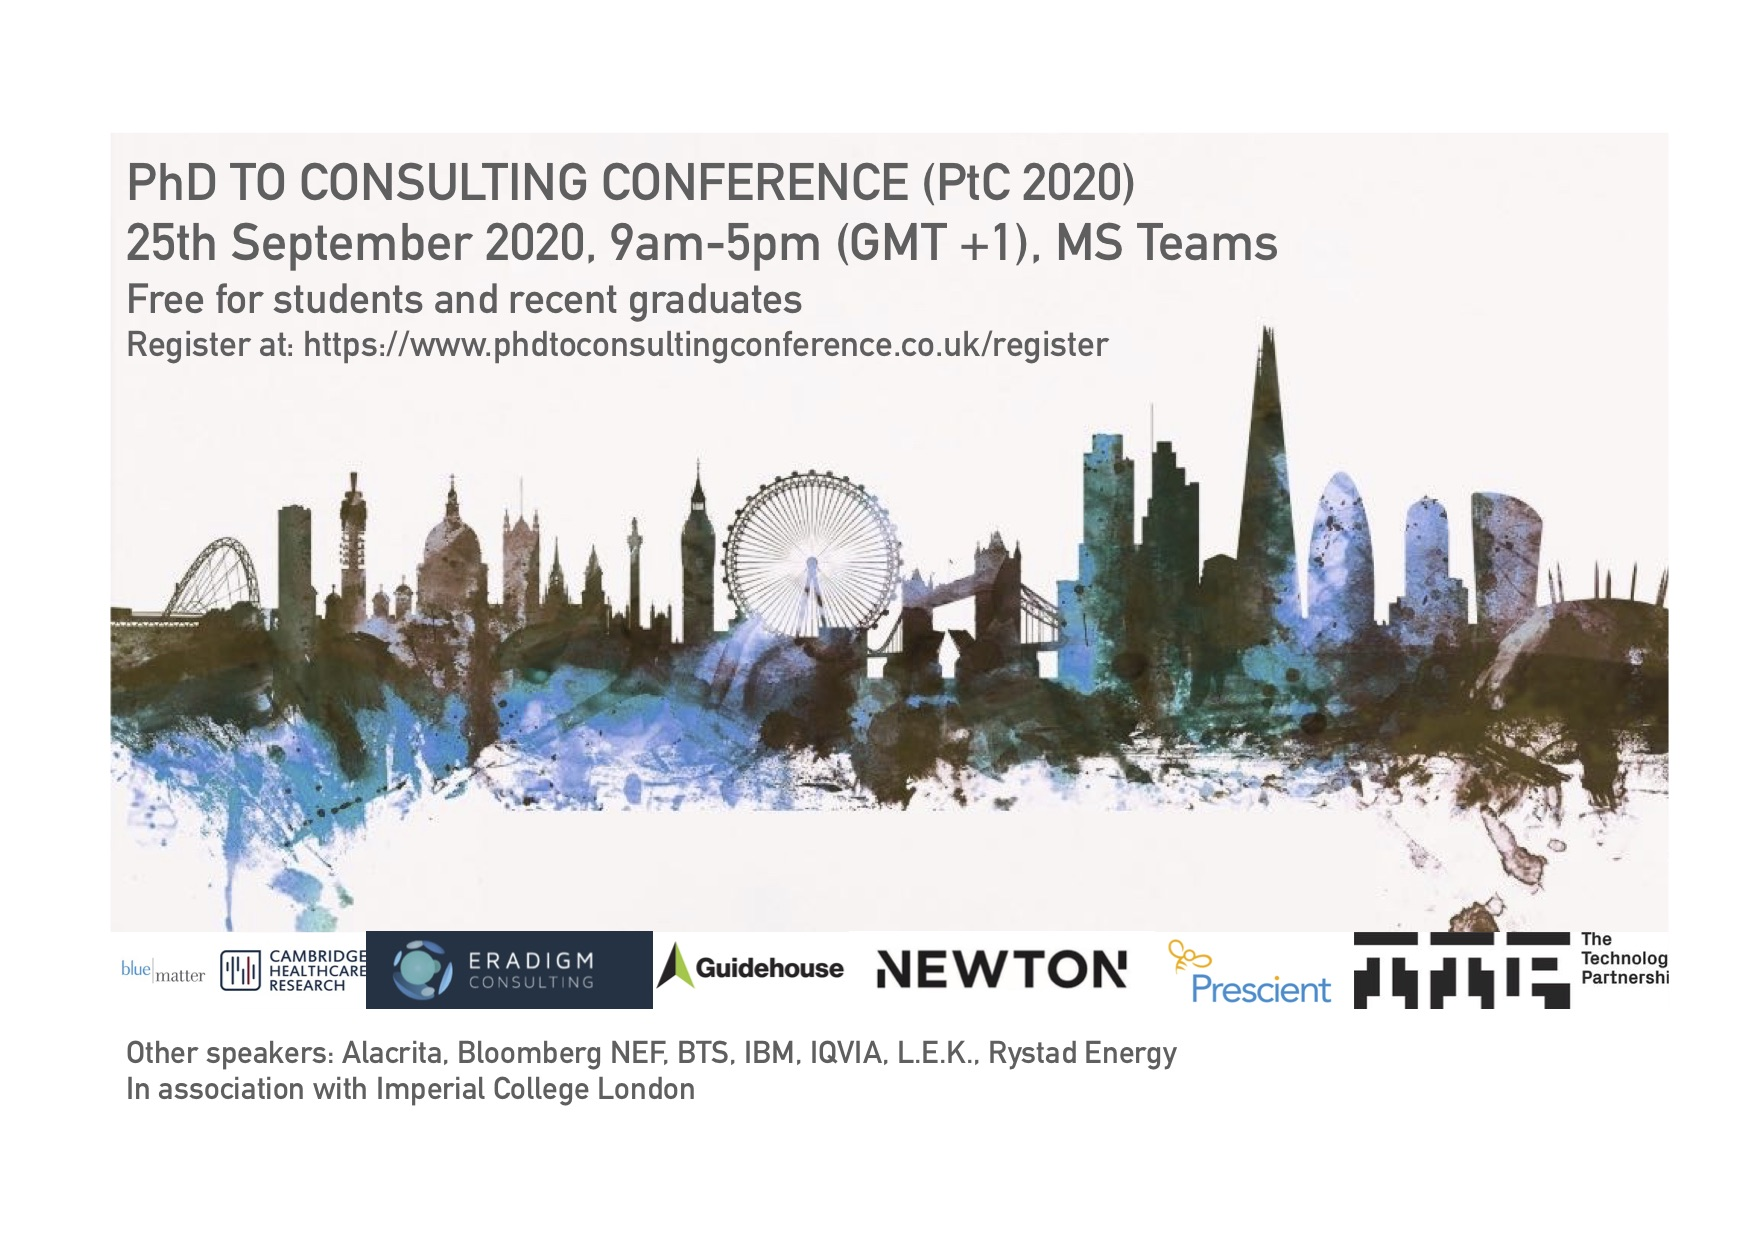 PhD to Consulting Conference 2020 infographic